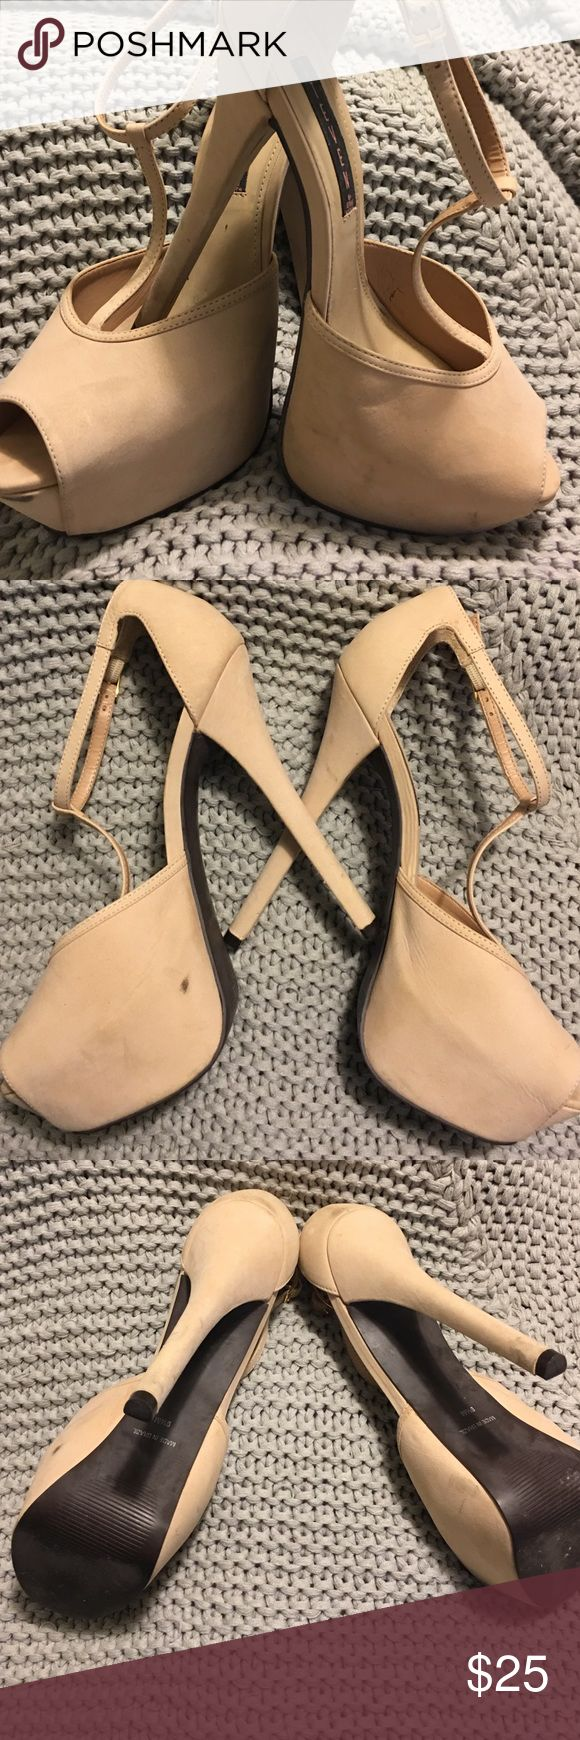 Steven by Steve Madden High Heels Extremely high heels. It has normal wear and tear but it's in good condition. Six inch heels Steven by Steve Madden Shoes Heels